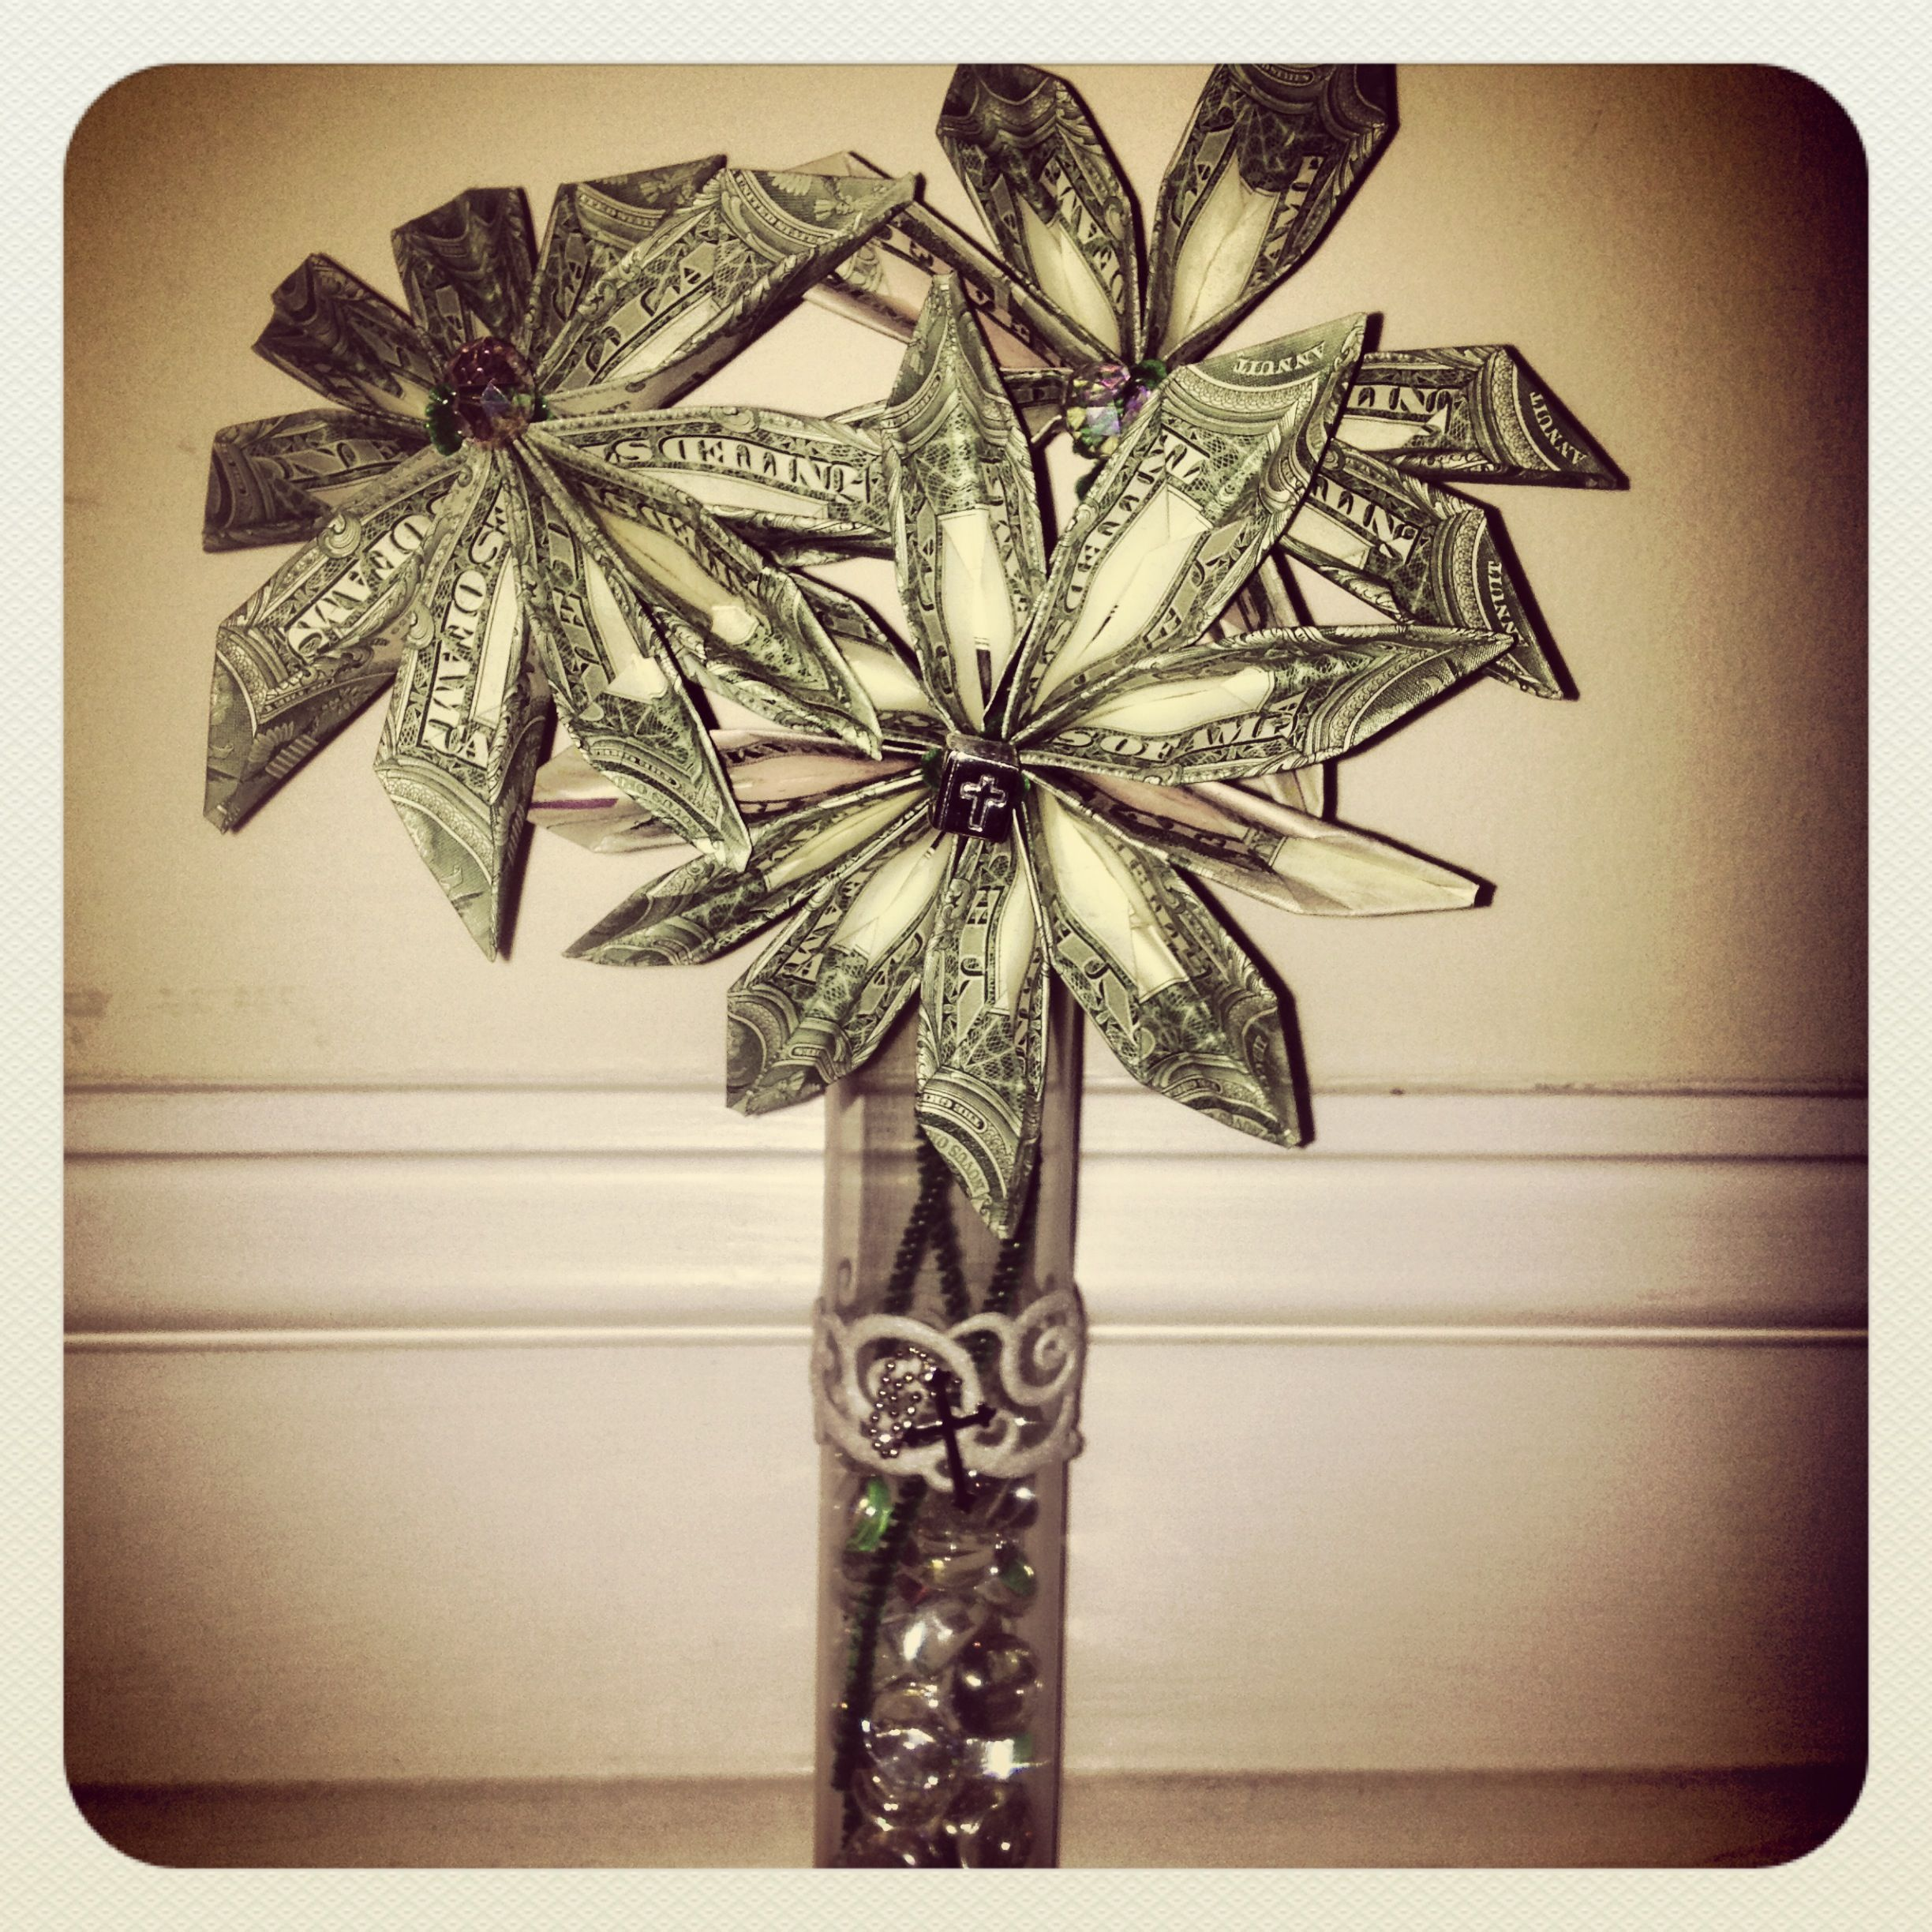 Get crafty with the gift of money create and origami money flower get crafty with the gift of money create and origami money flower directions found mightylinksfo